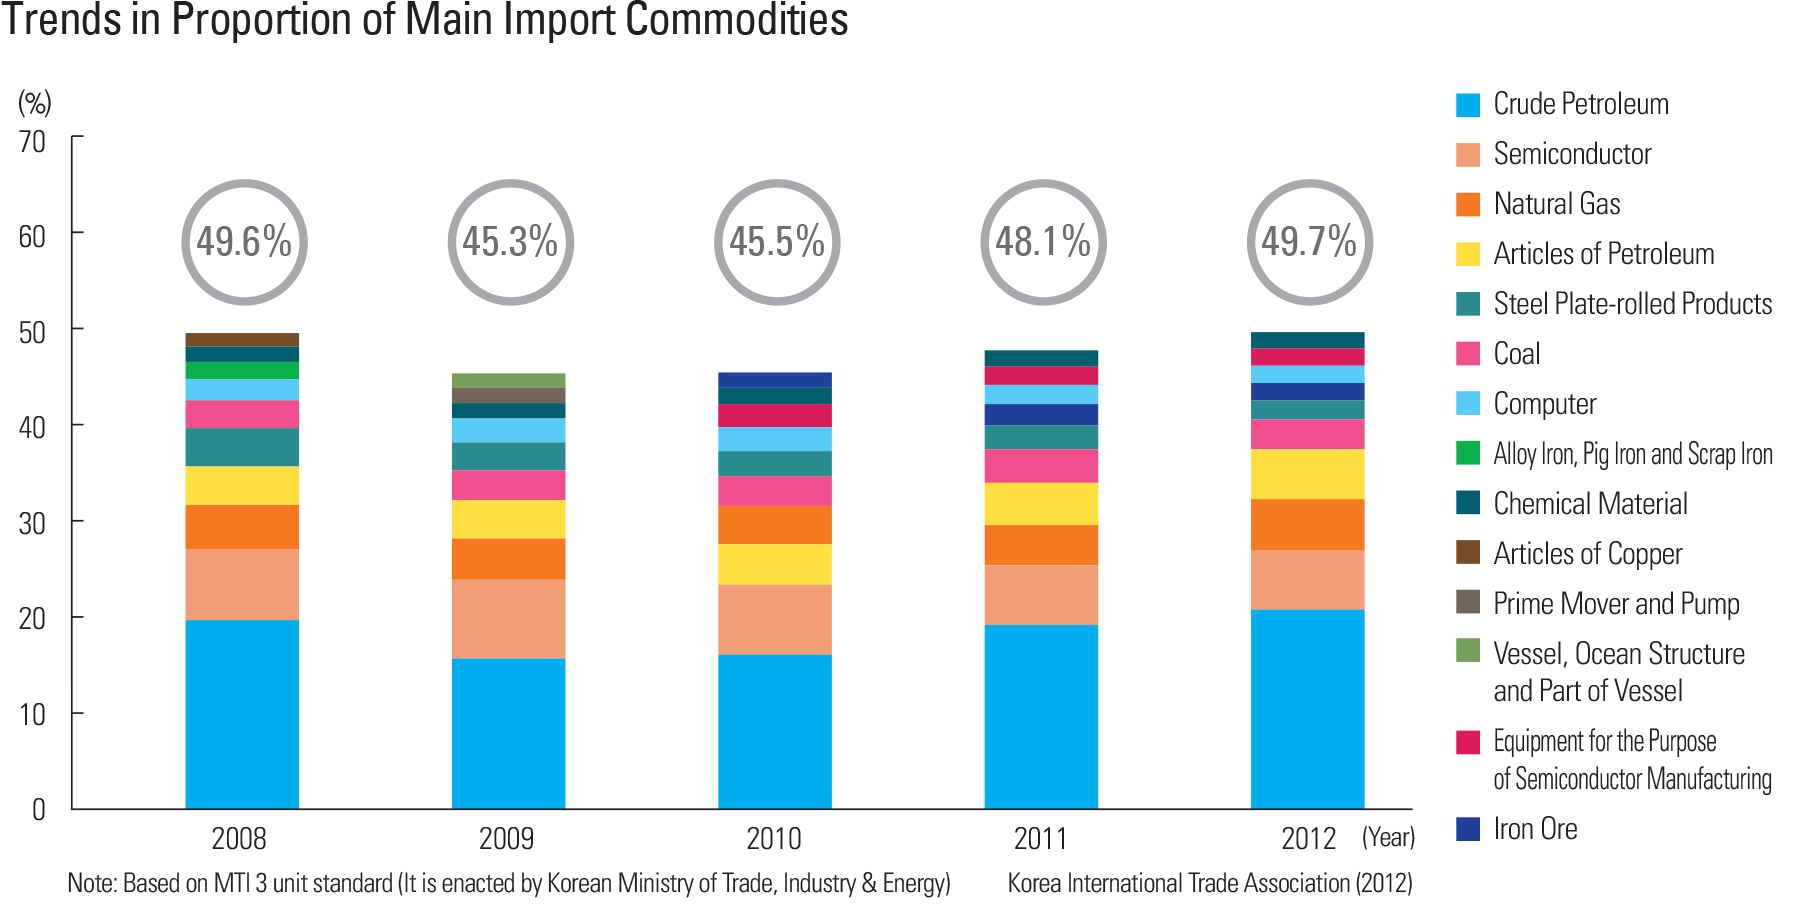 Trends in Proportion of Main Import Commodities